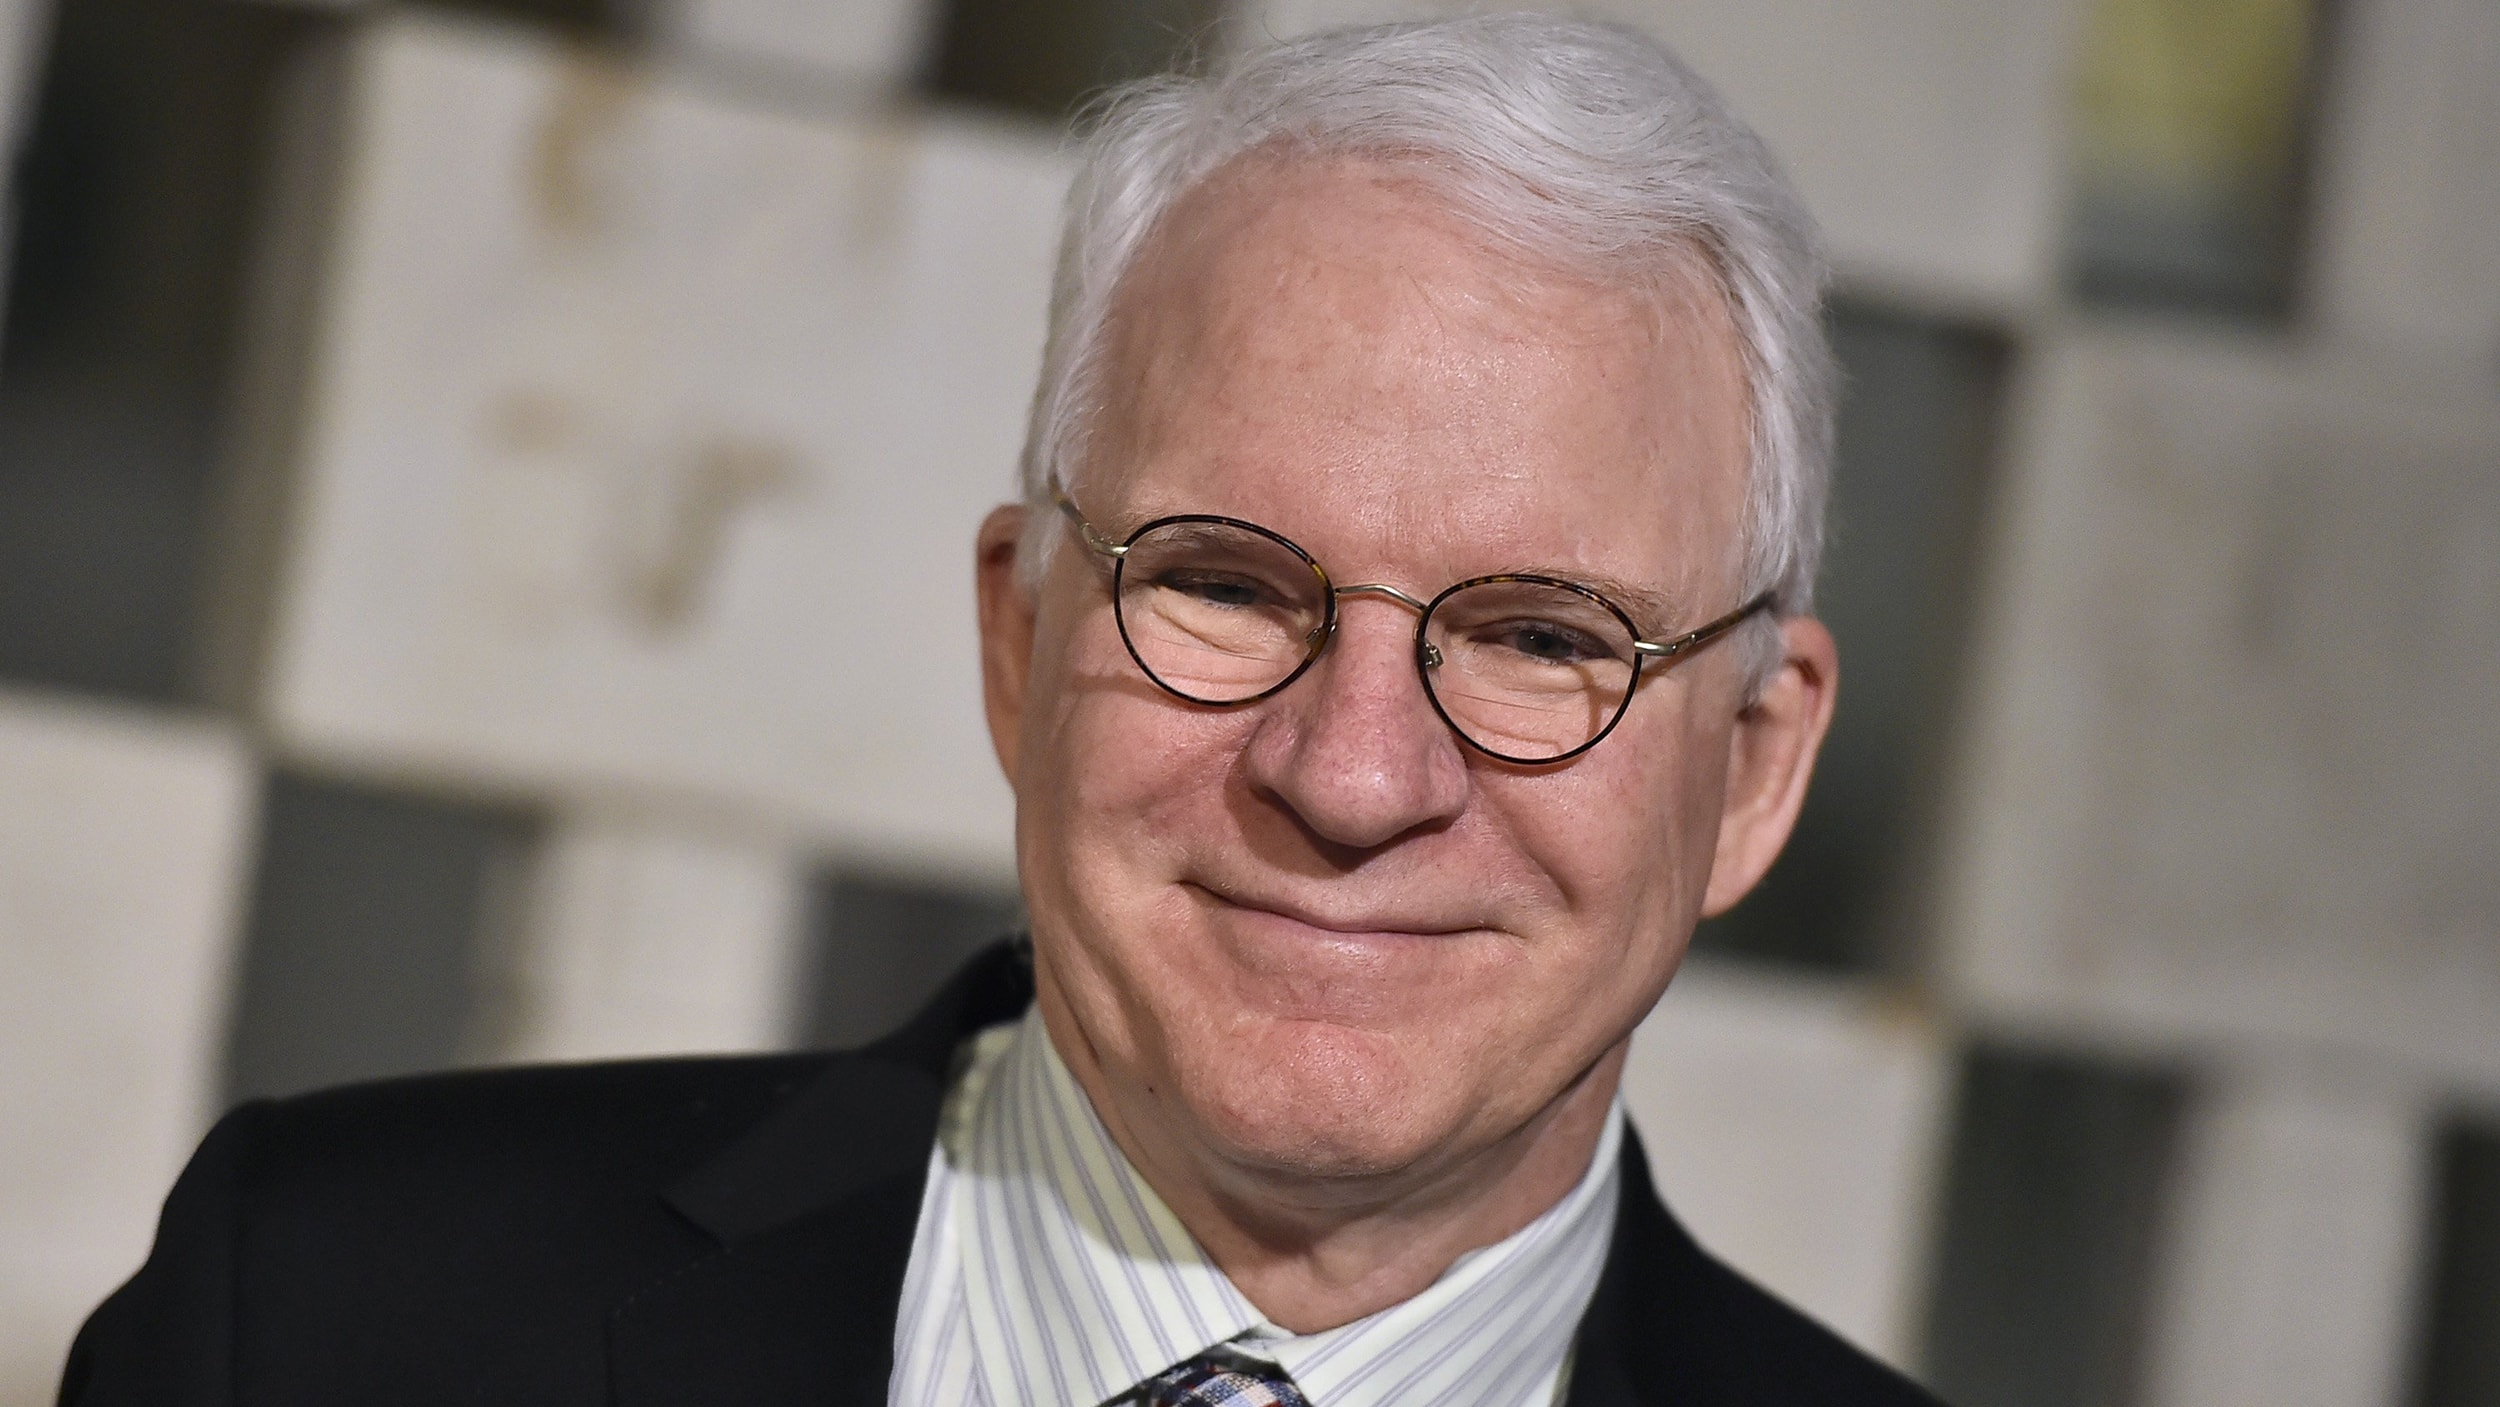 Steve Martin Wallpapers hd